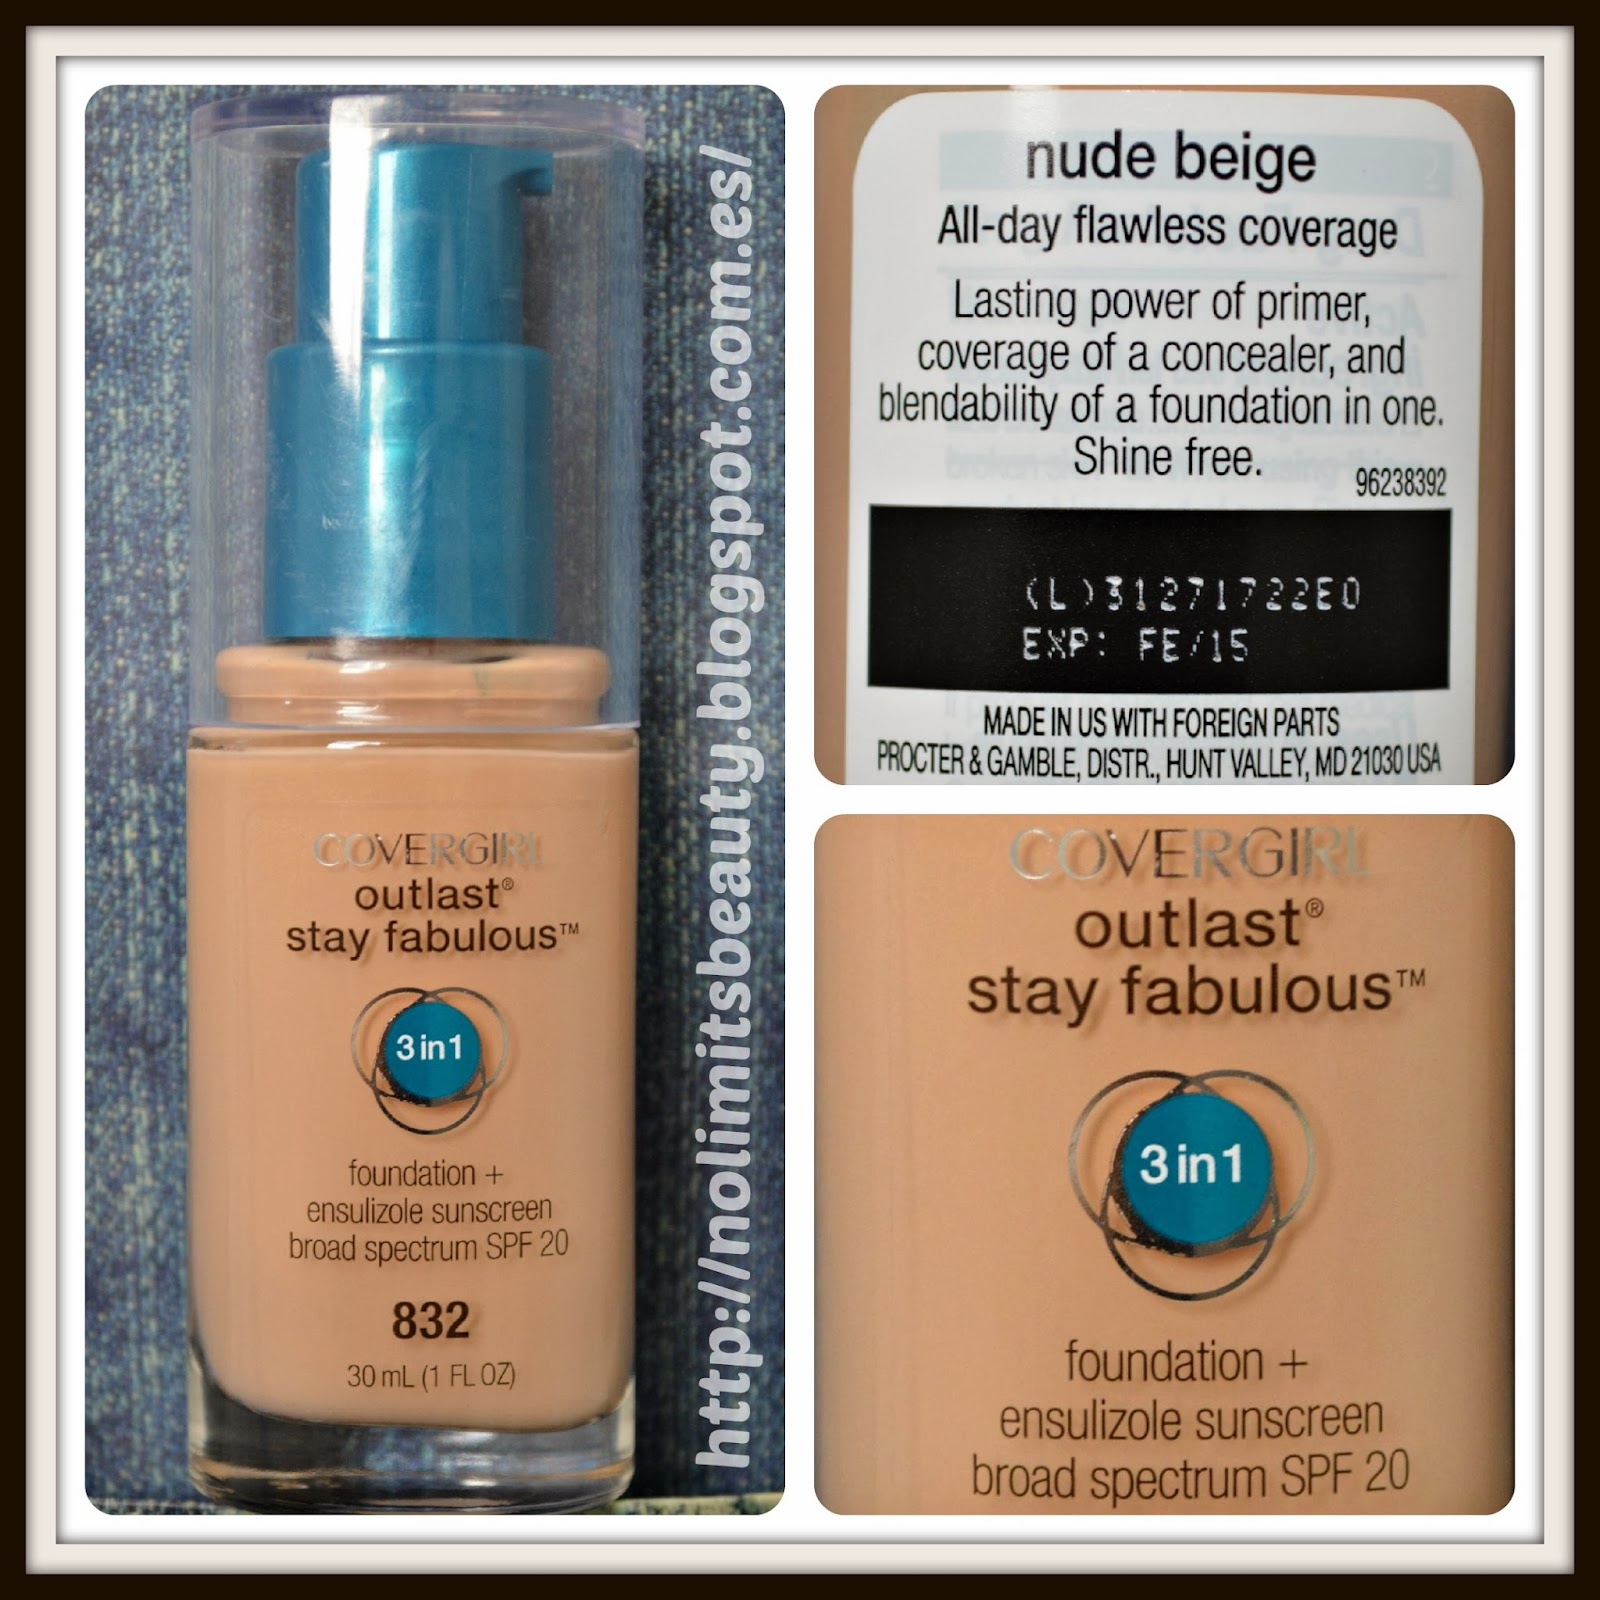 Covergirl Outlast Stay Fabulous Foundation en 832 Nude Beige